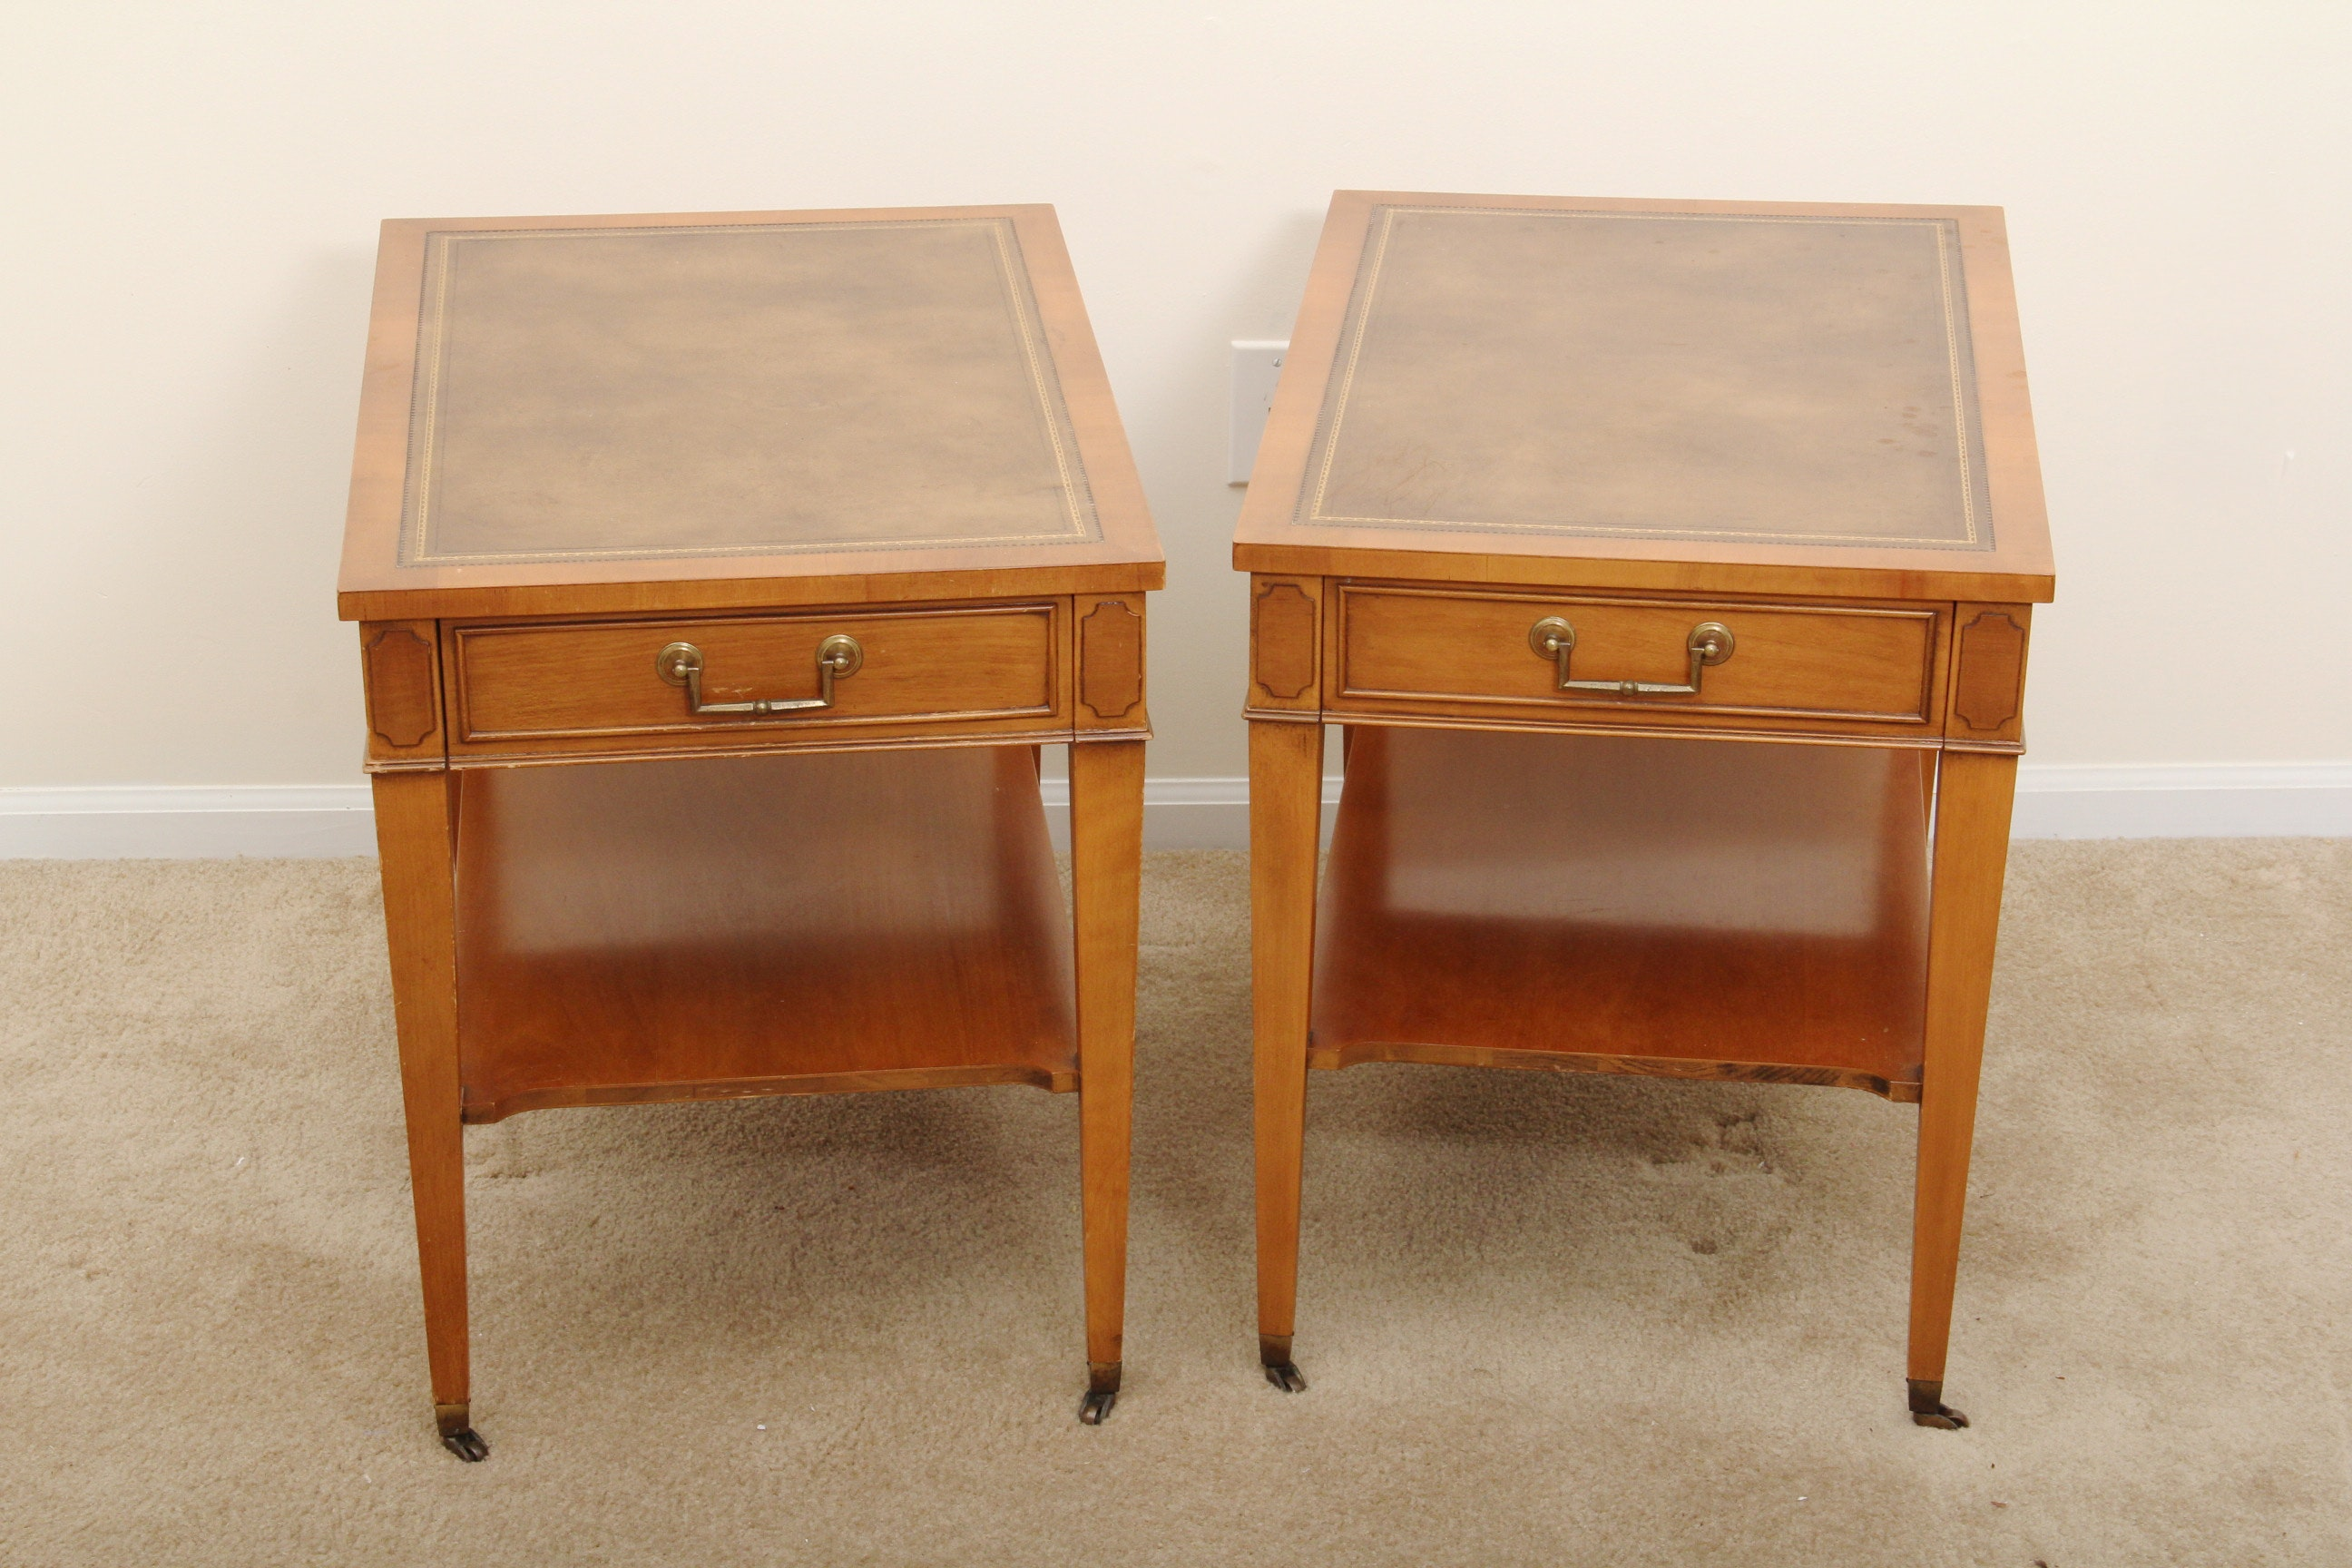 pair of hekman furniture leather inlay oak side table - Hekman Furniture